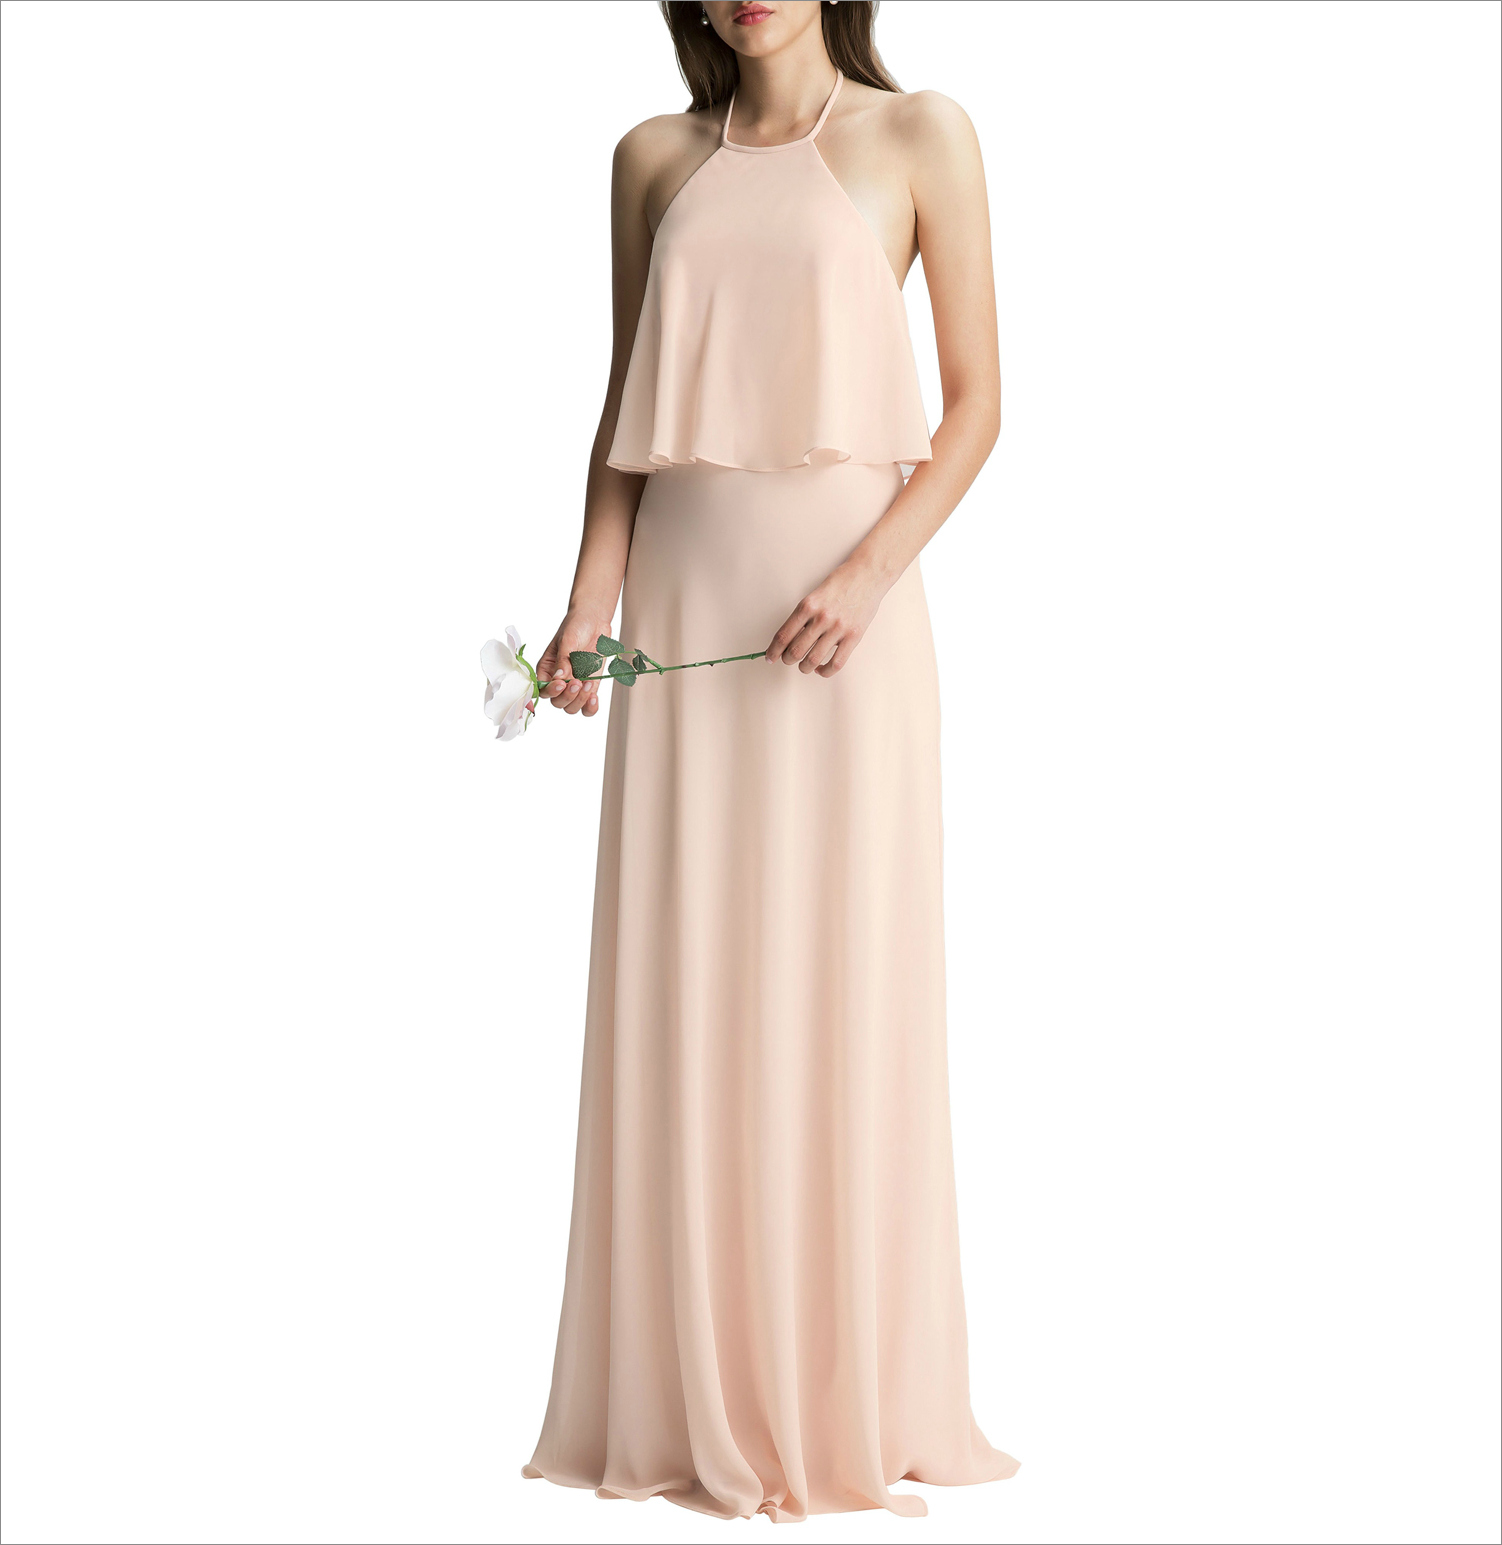 Nordstrom flounce top bridesmaid dress ideas under 150 nordstrom